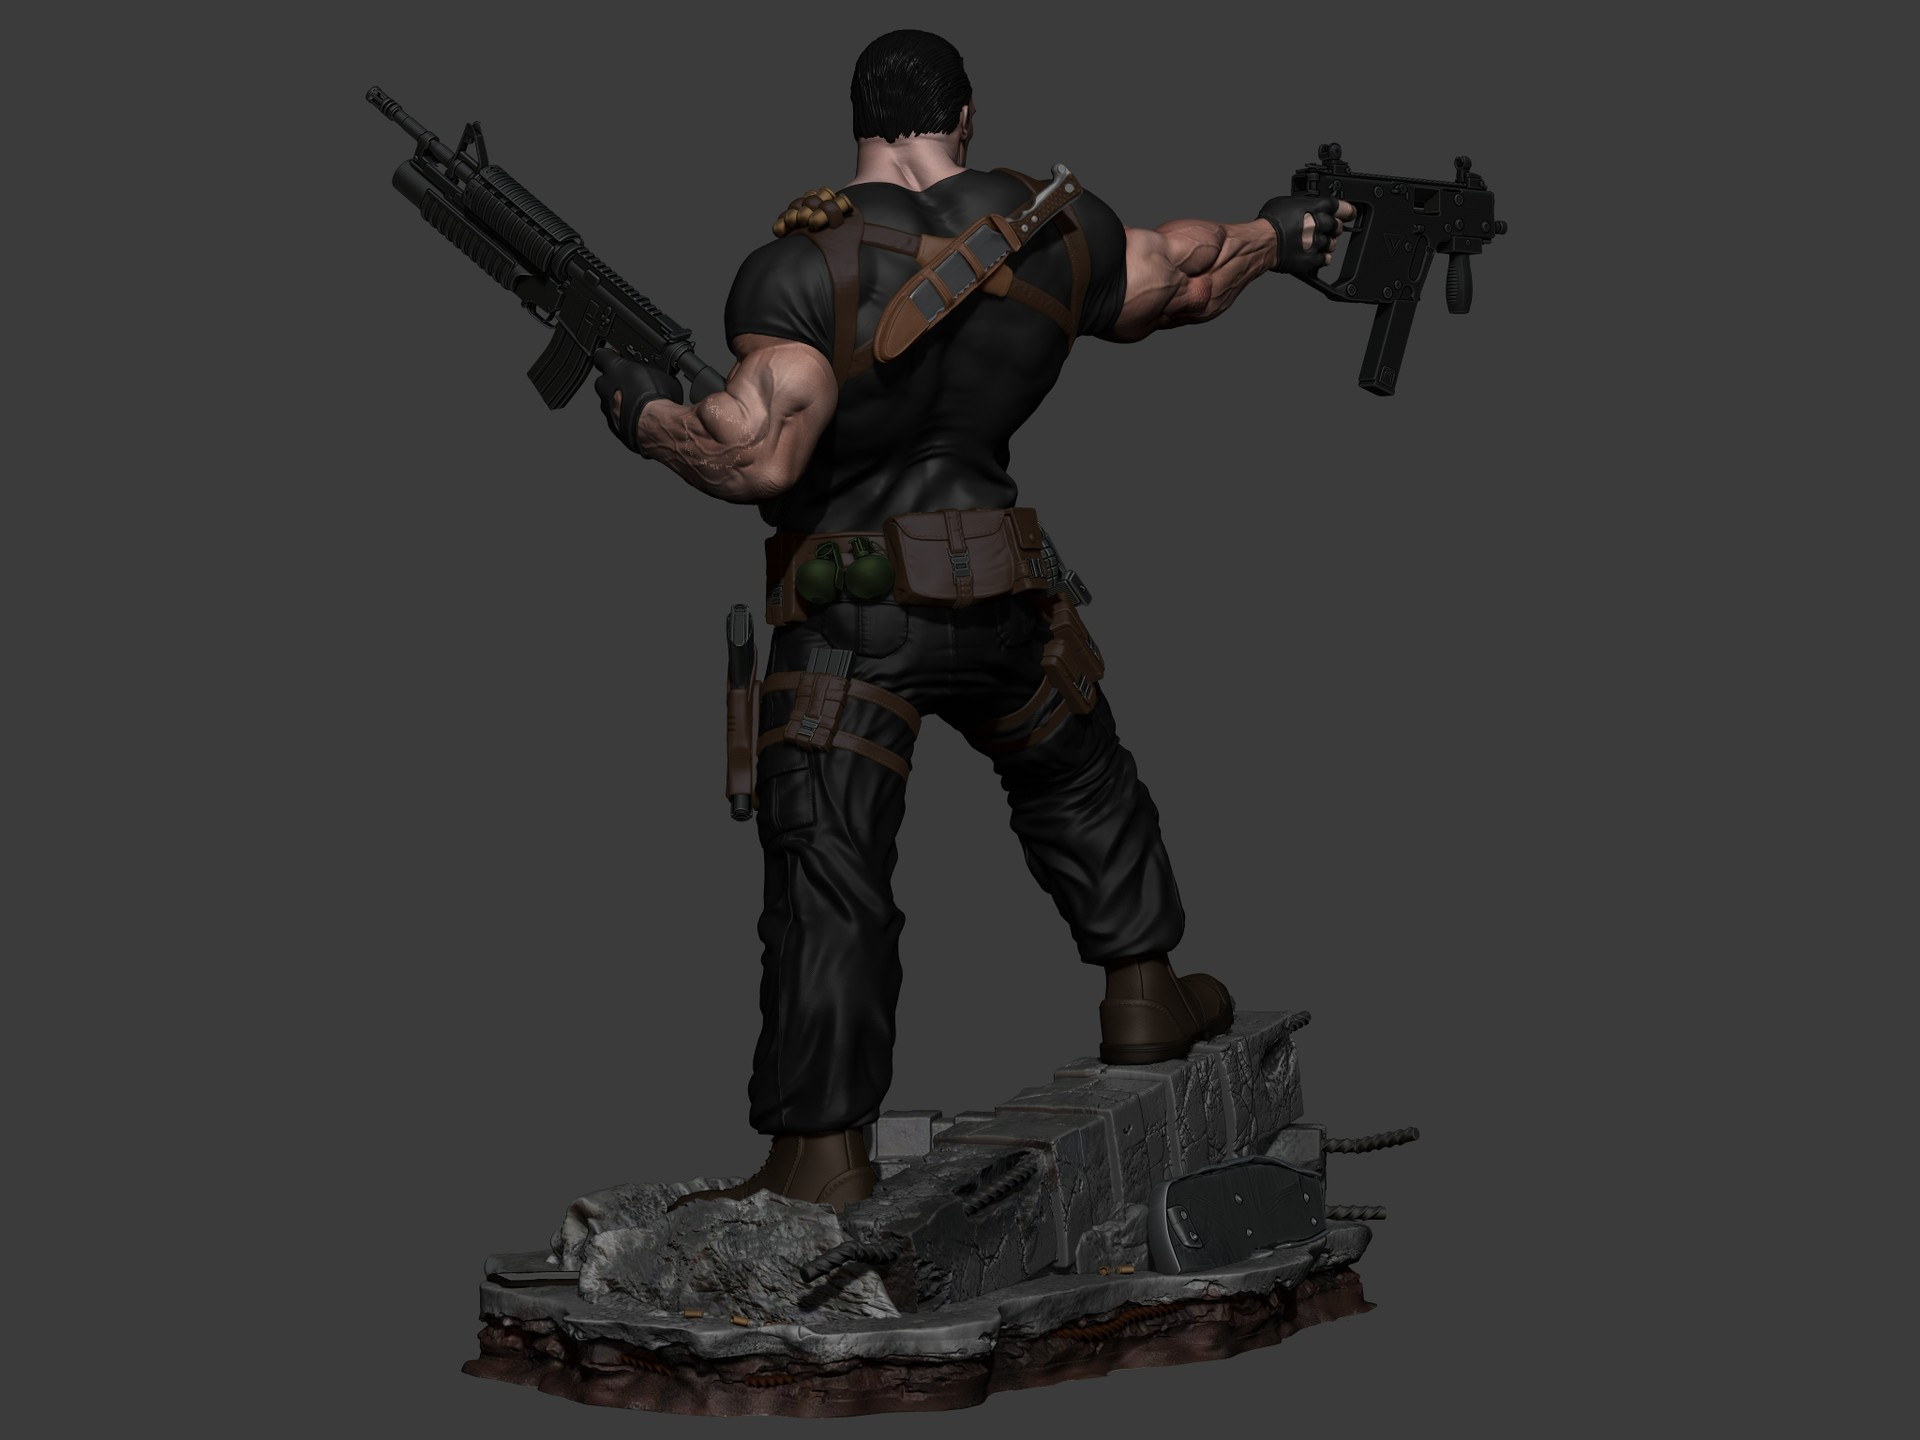 Franco carlesimo punisher prev 006